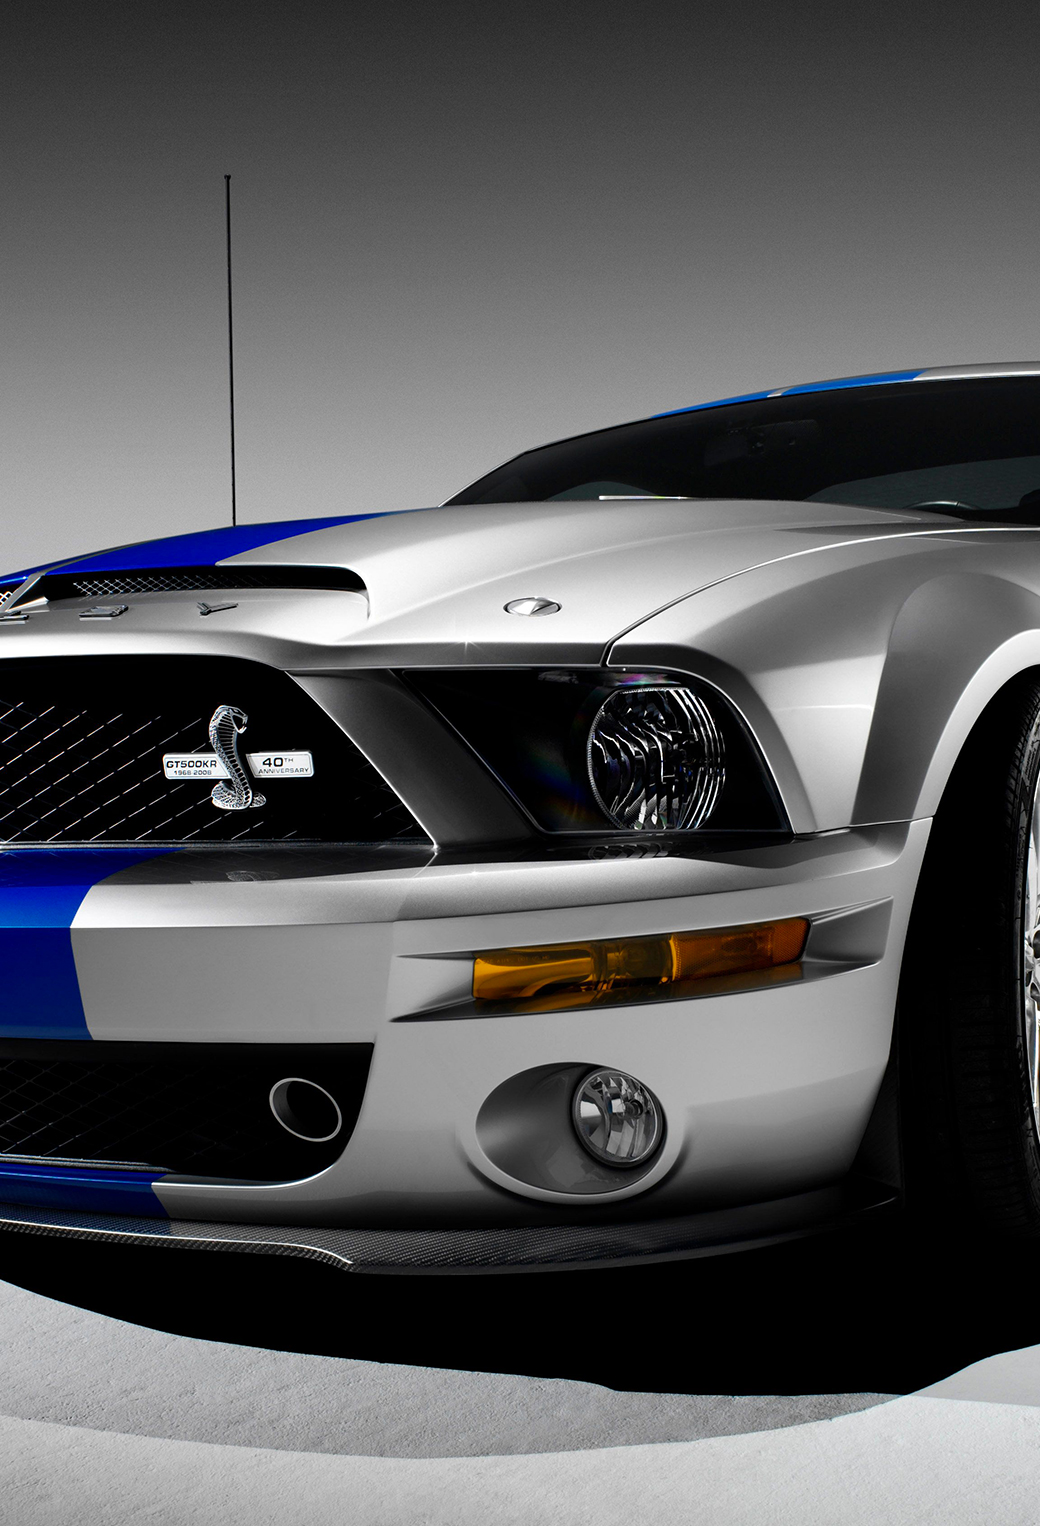 Ford Mustang GT500 3Wallpapers iPhone Parallax Ford Mustang GT500